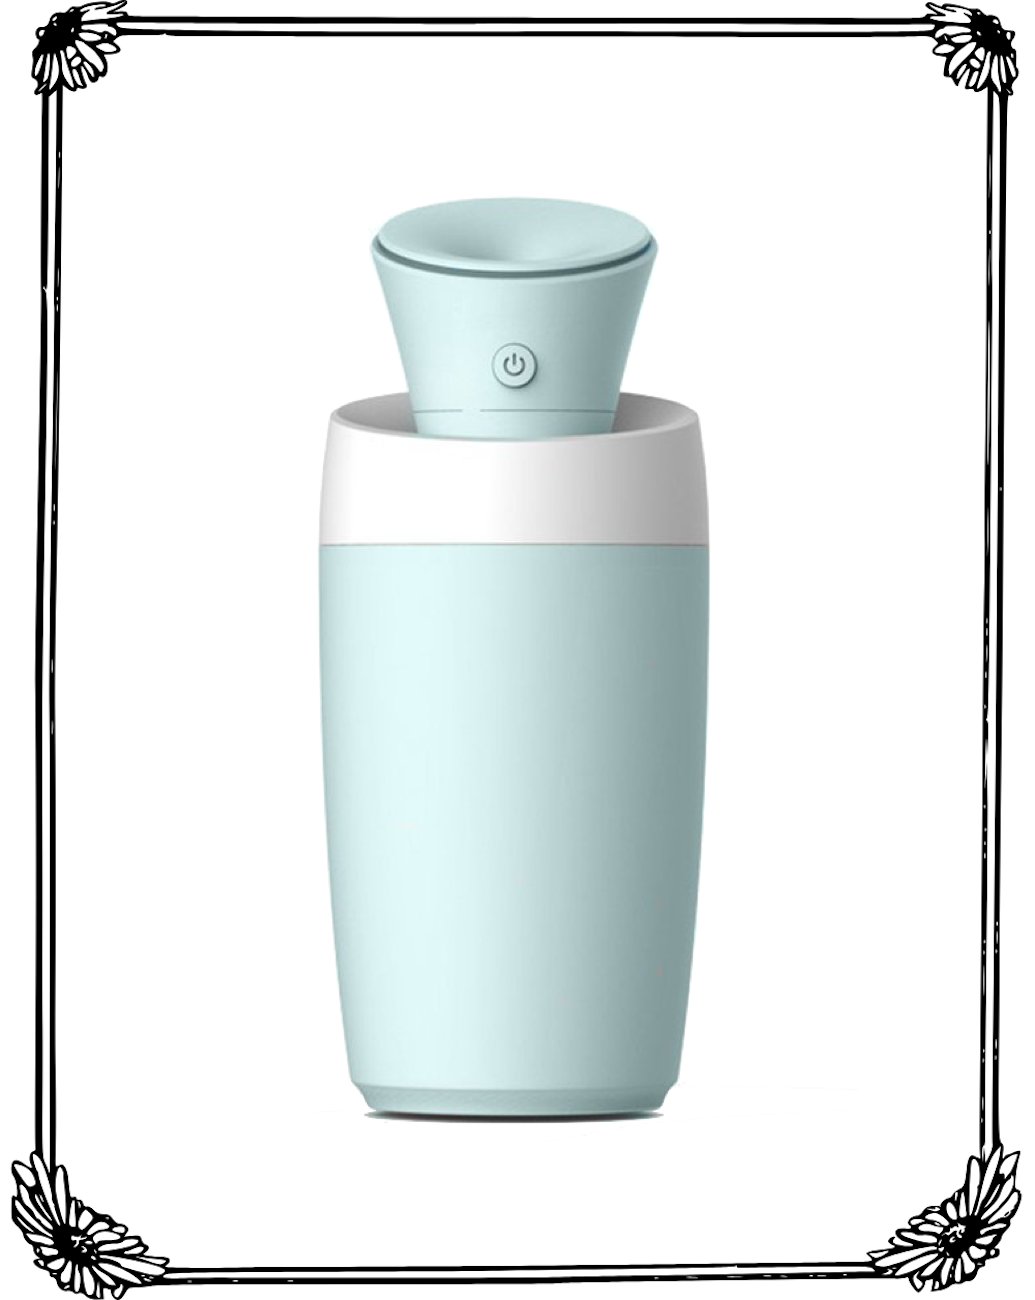 oulins-humidifier.png